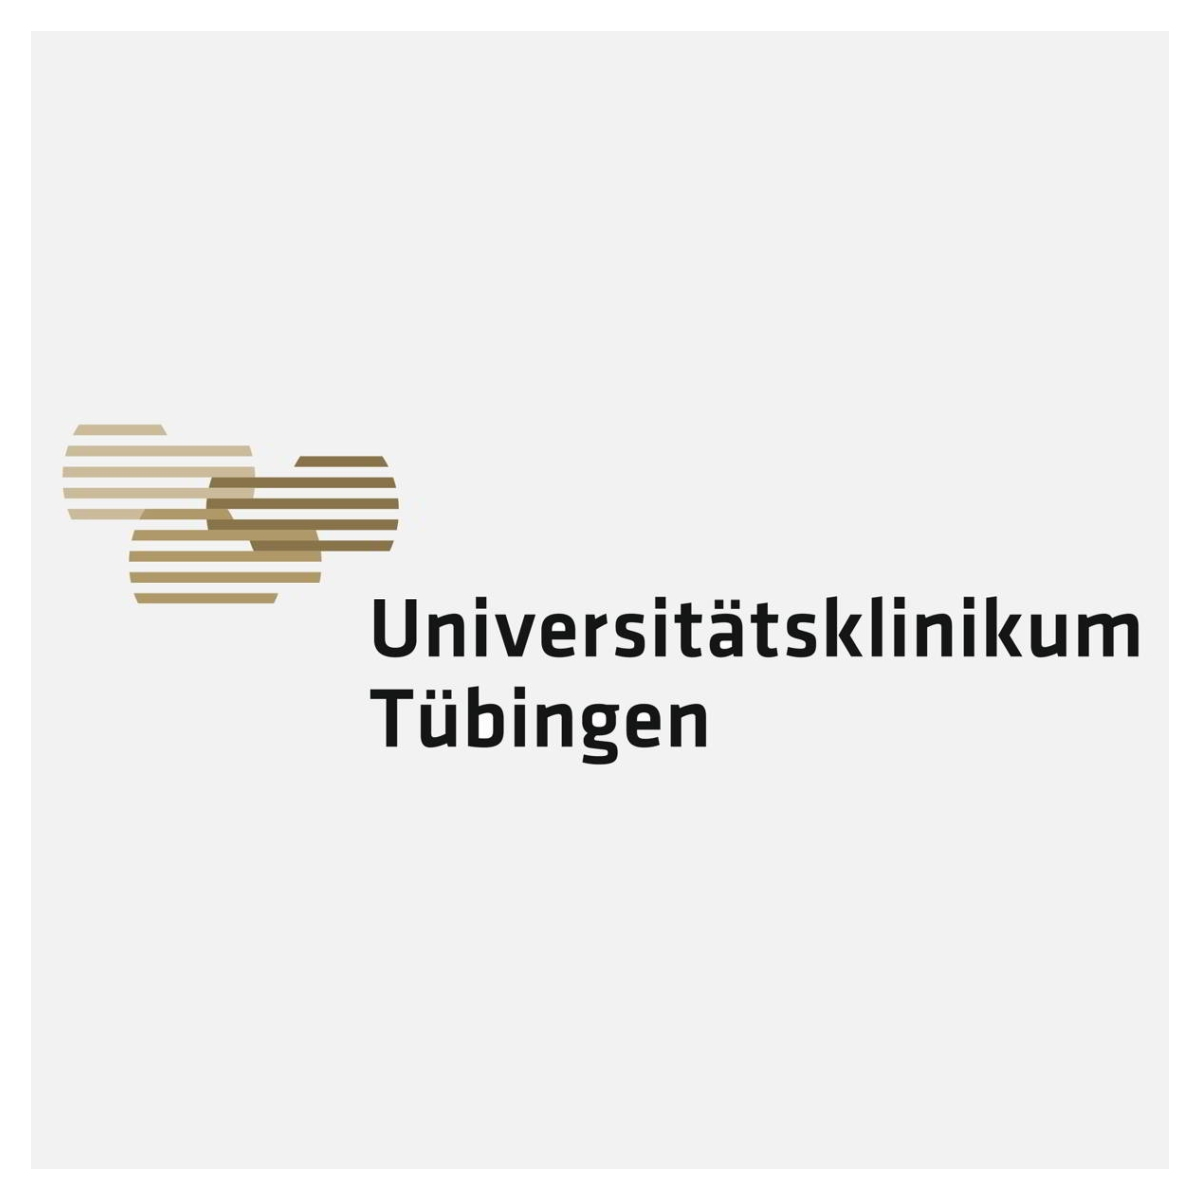 Logo of the Tübingen University Hospital